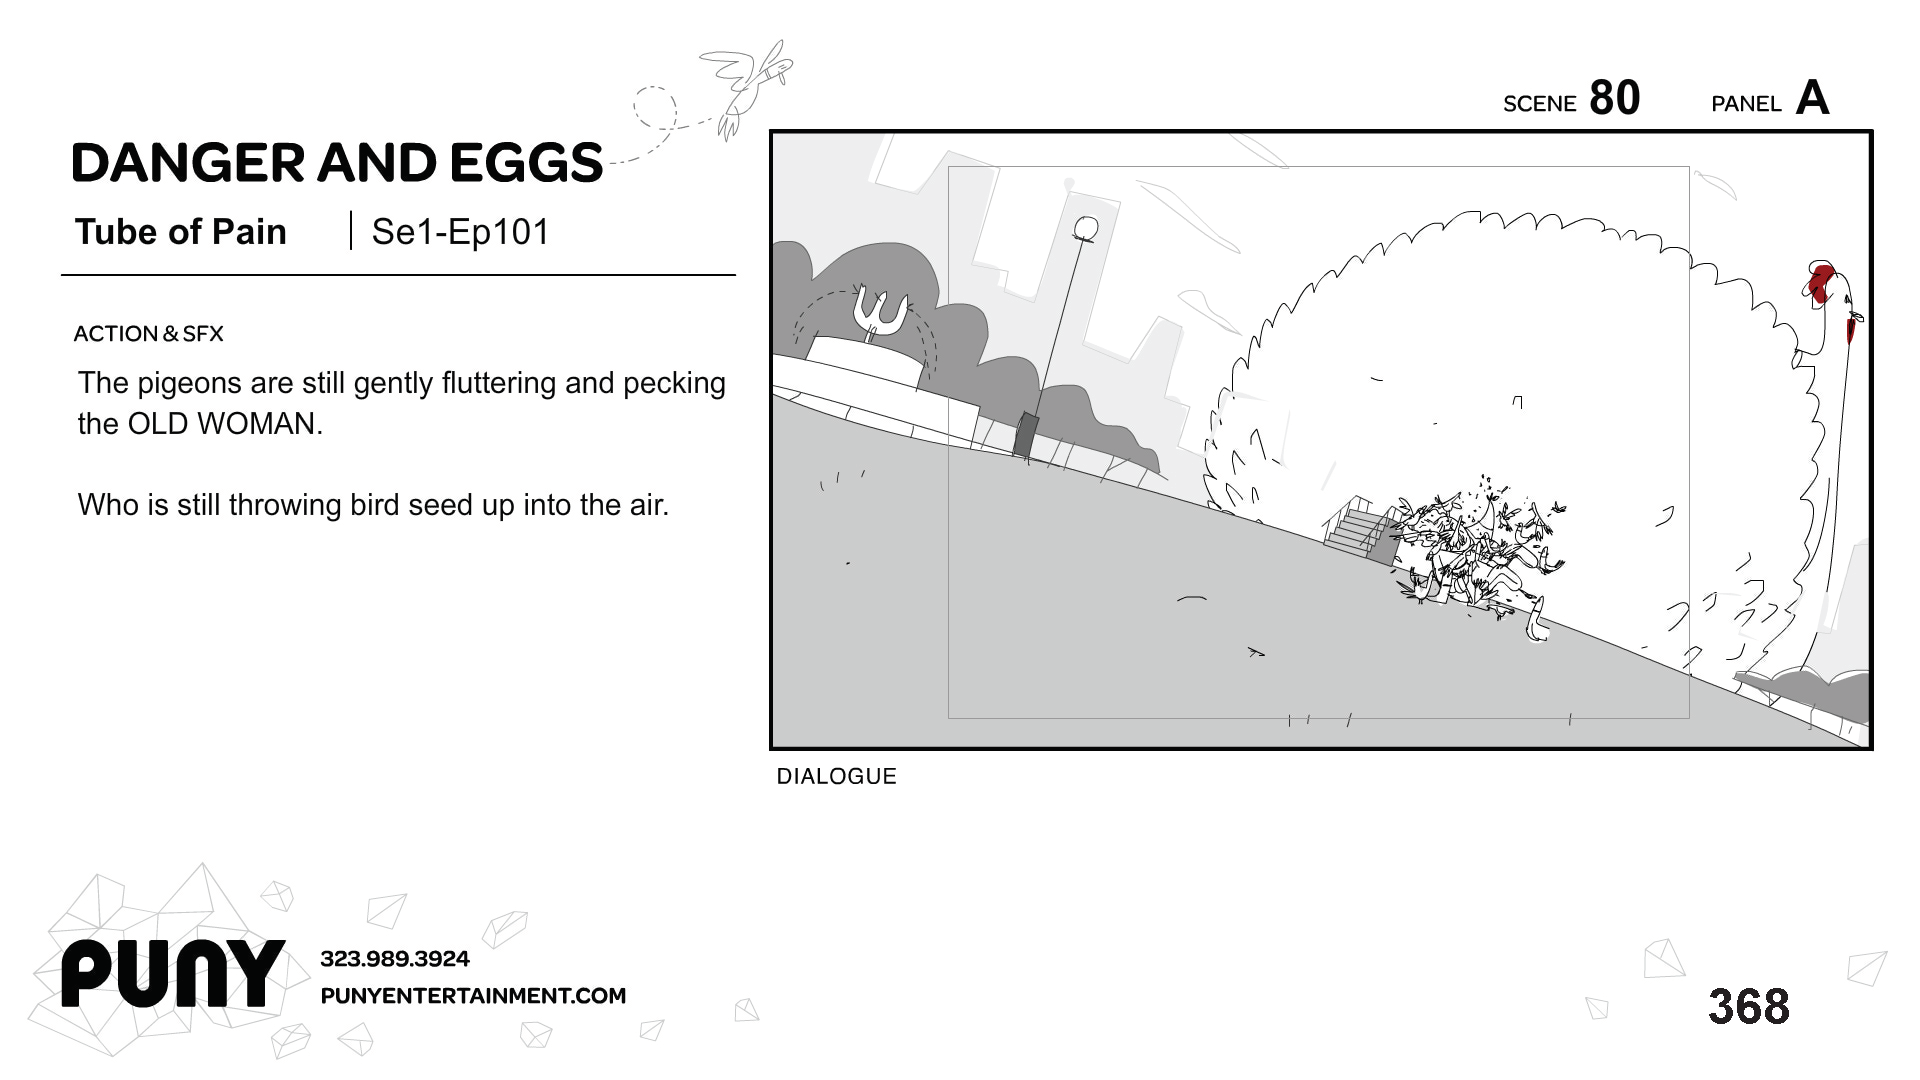 MikeOwens_STORYBOARDS_DangerAndEggs_Page_263.png